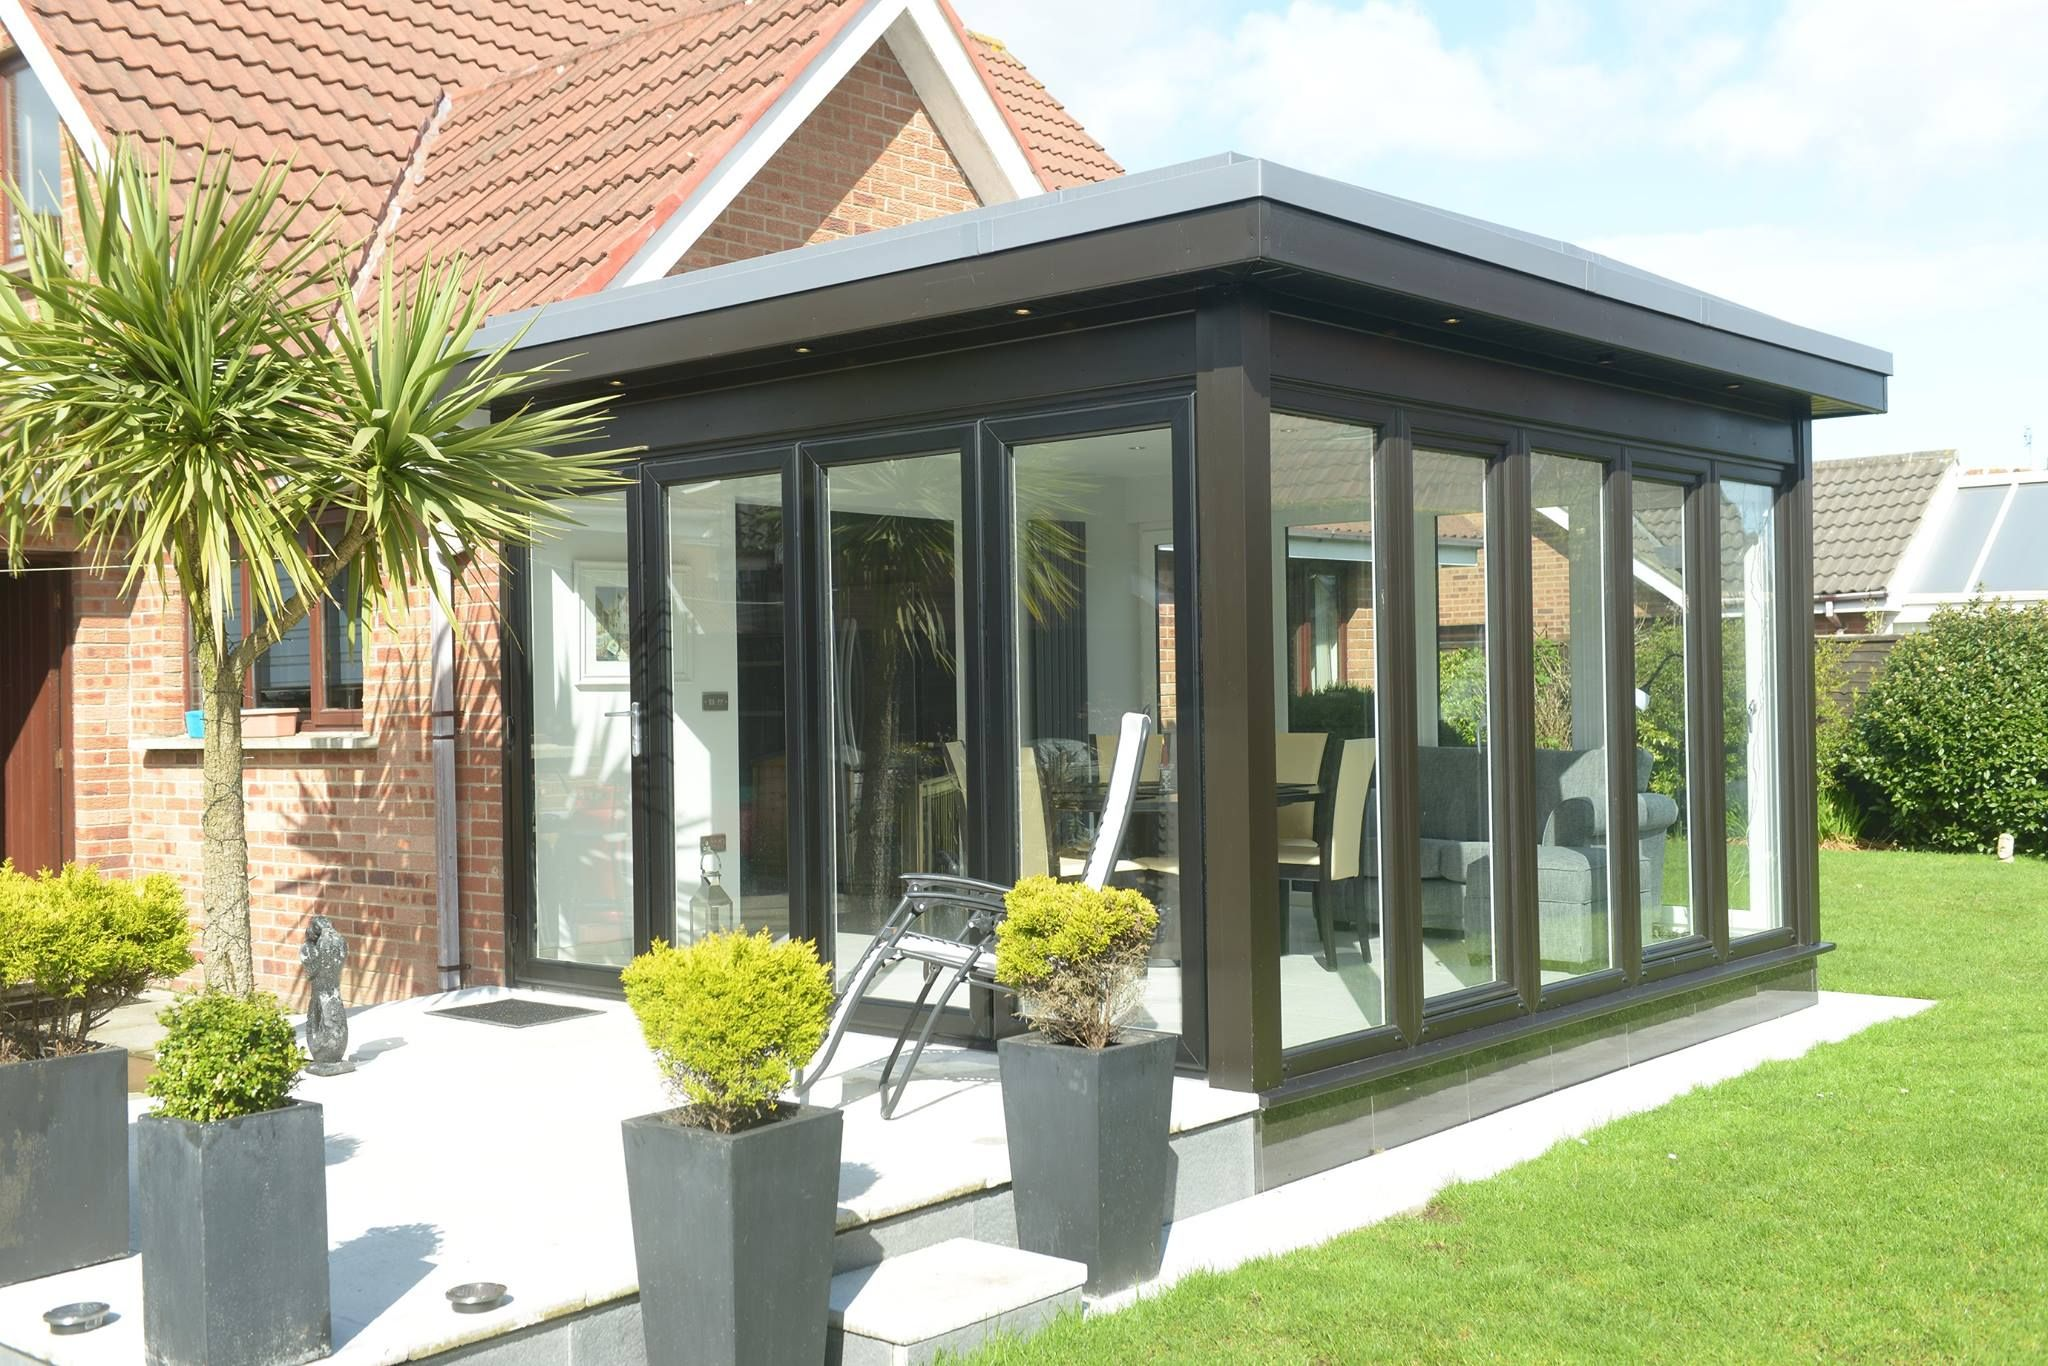 Stunning #sunroom Pod Northern Ireland - By utilising various